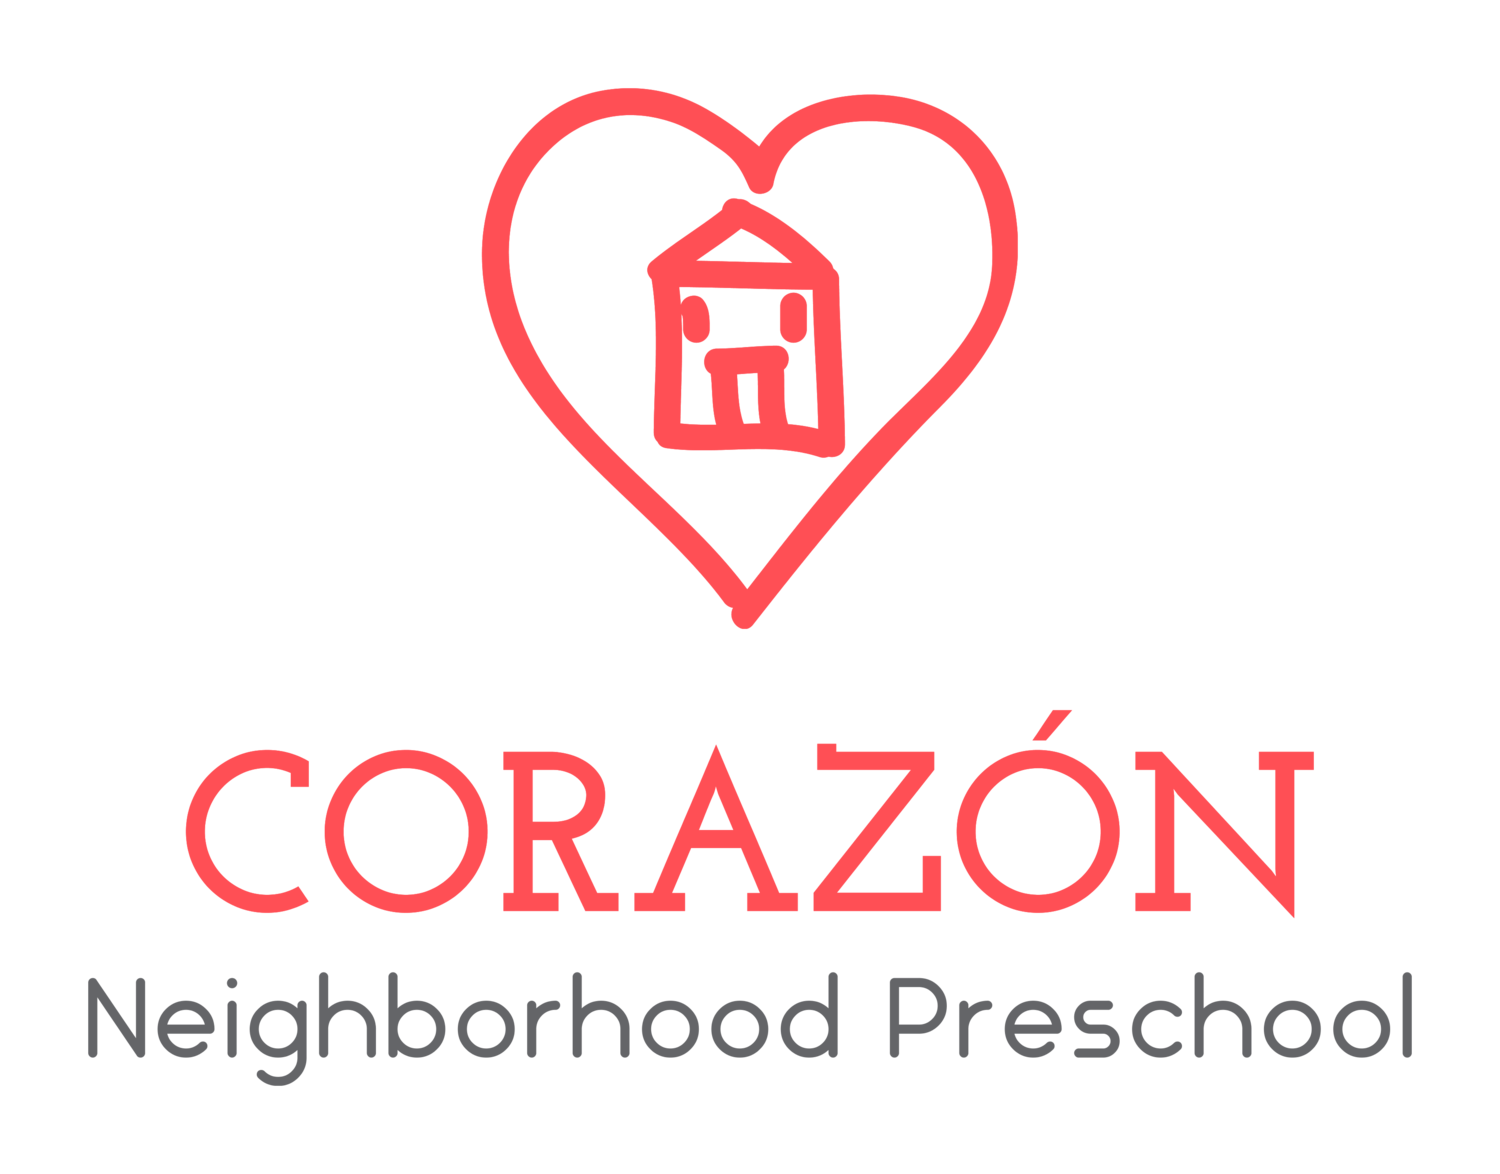 Corazón Neighborhood Preschool